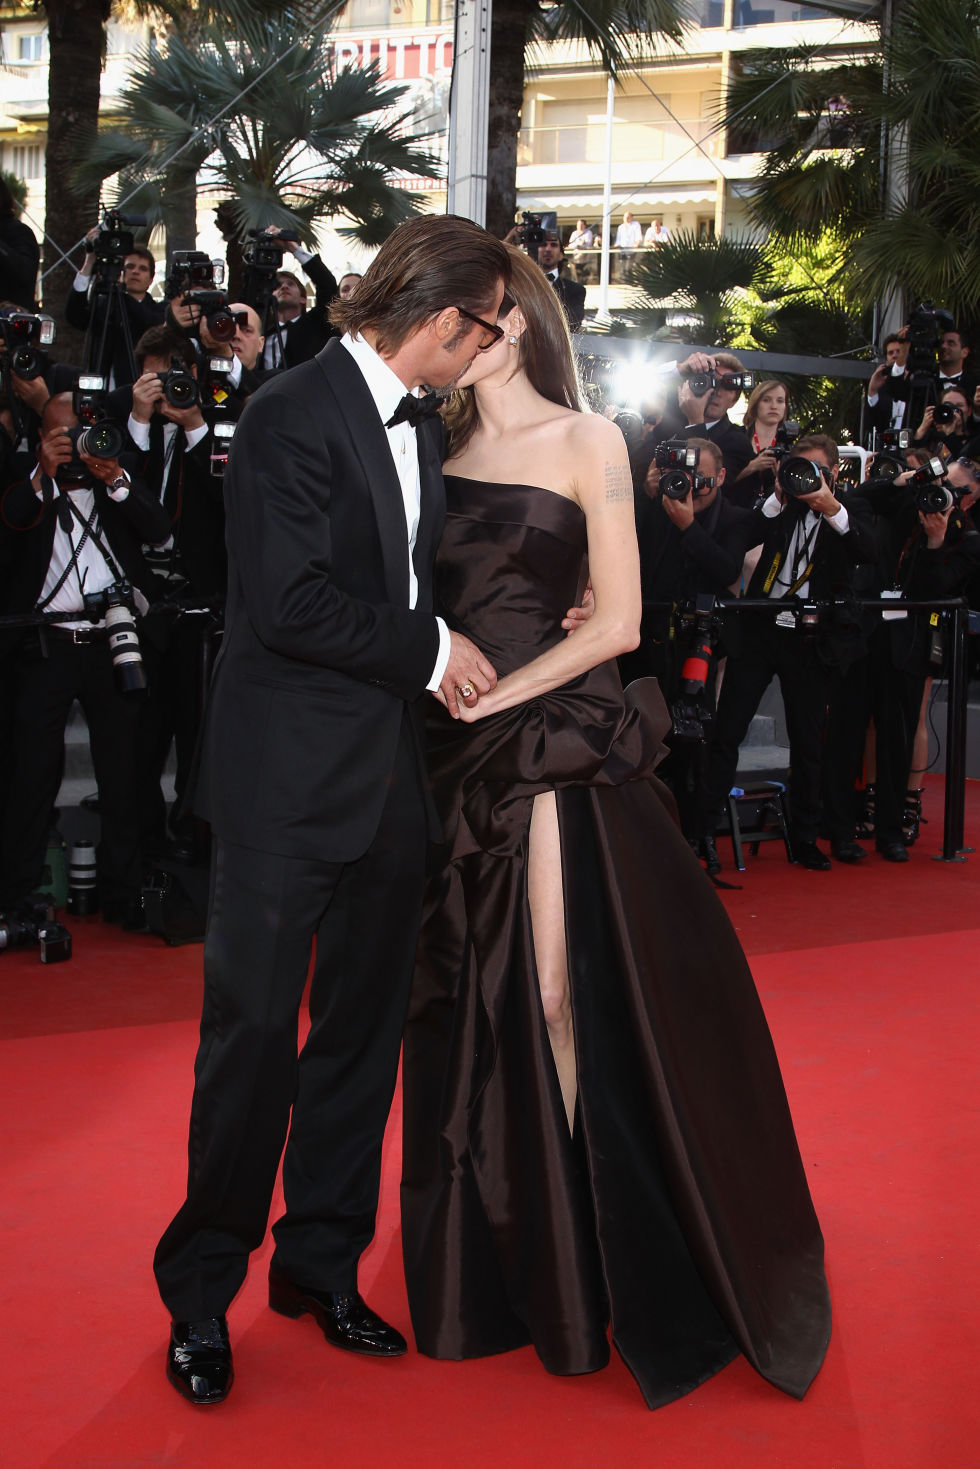 At the Tree of Life premiere at Cannes Film Festival.